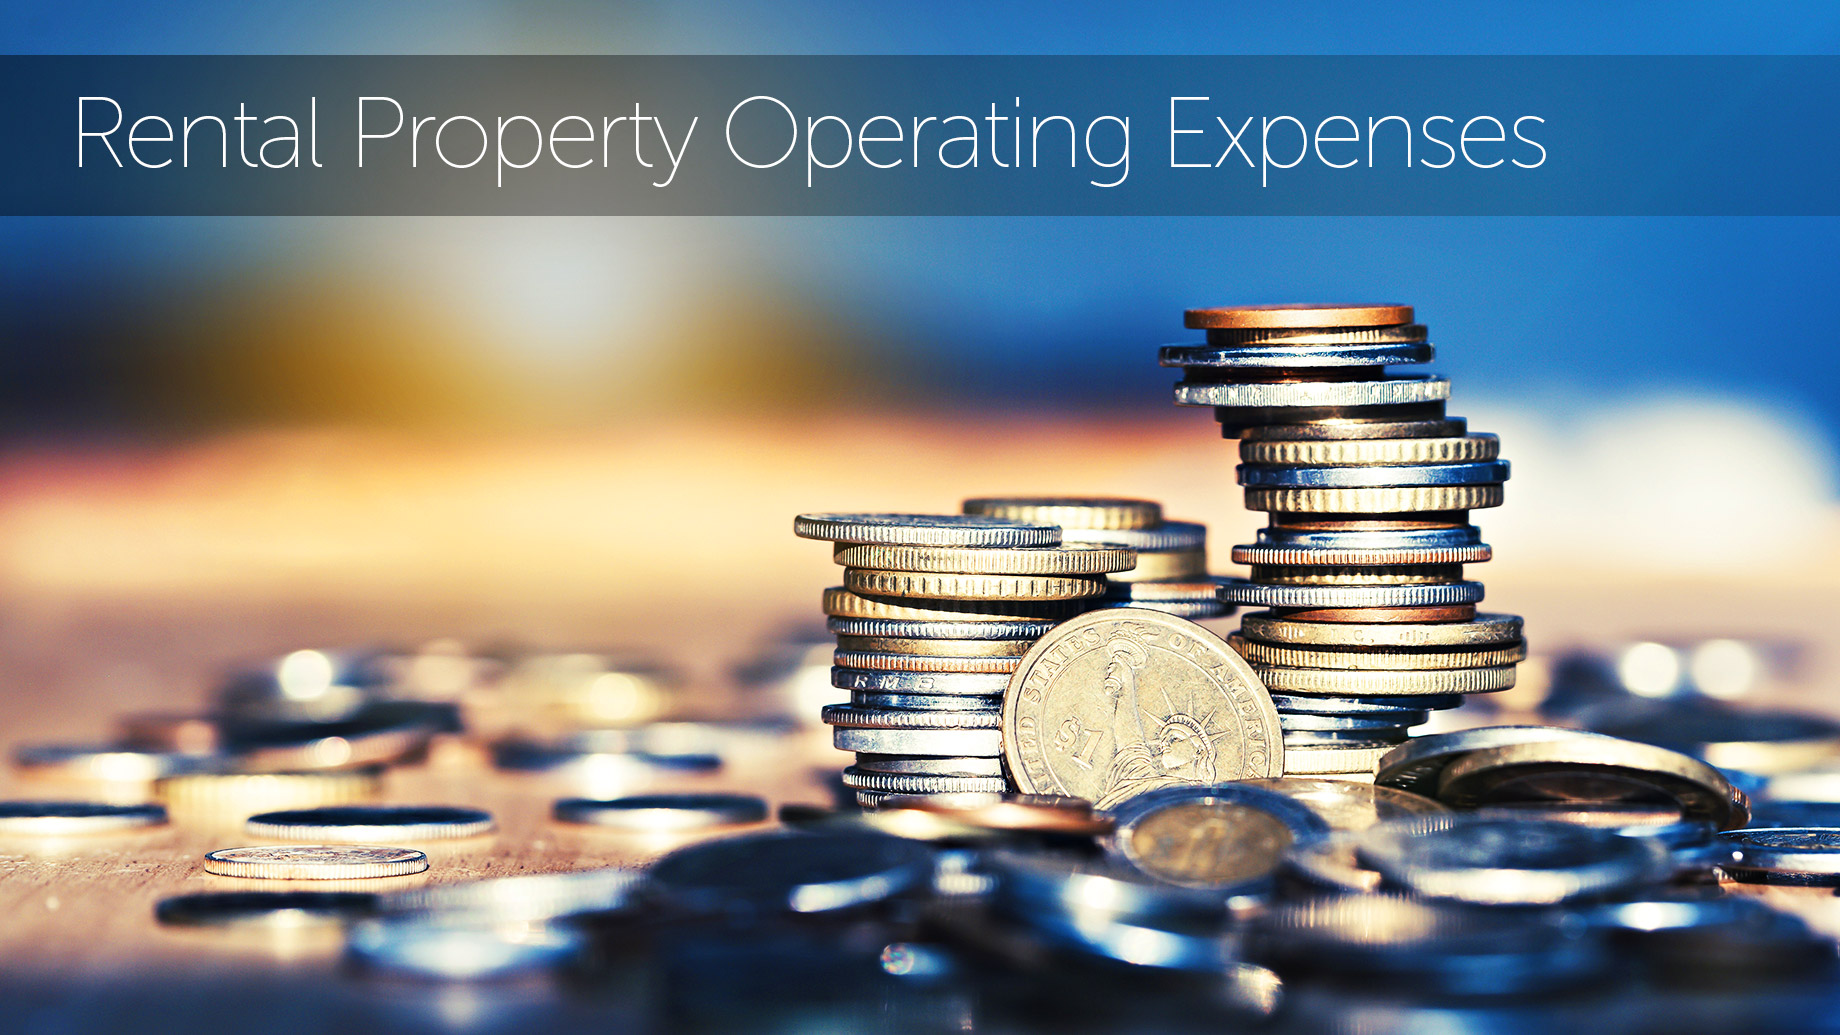 Rental Property Operating Expenses